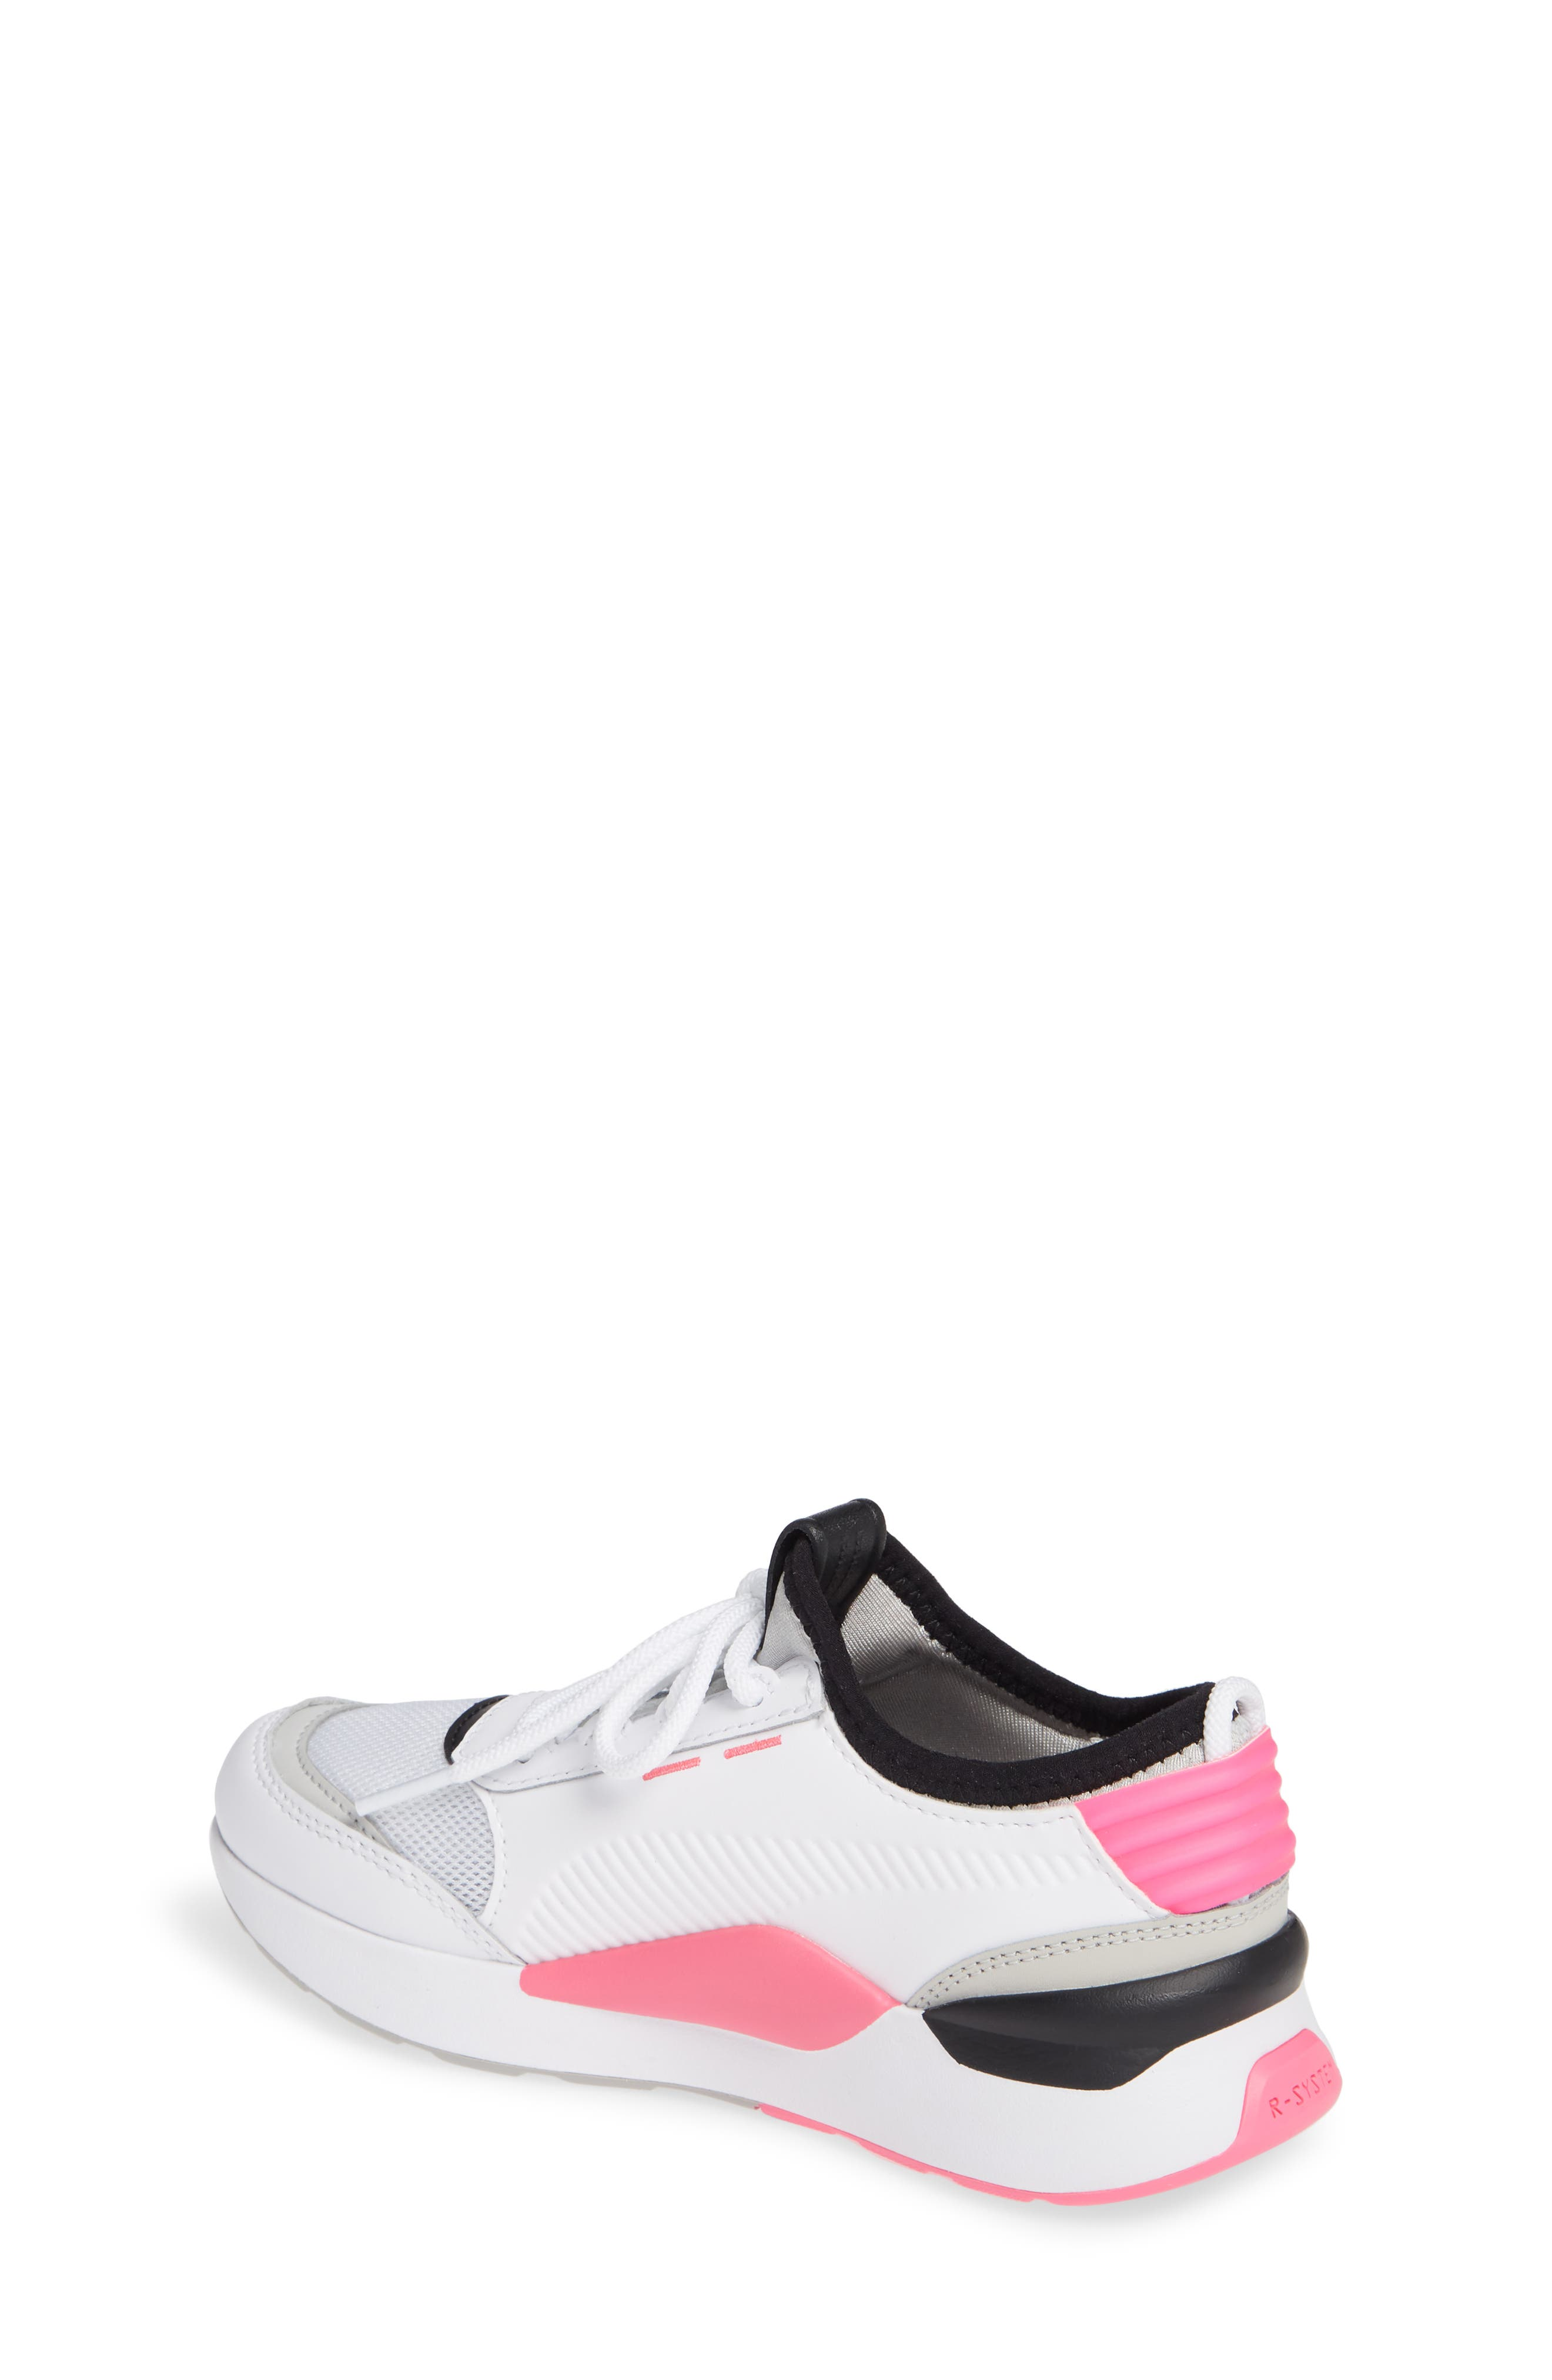 RS-0 Play Sneaker,                             Alternate thumbnail 2, color,                             101